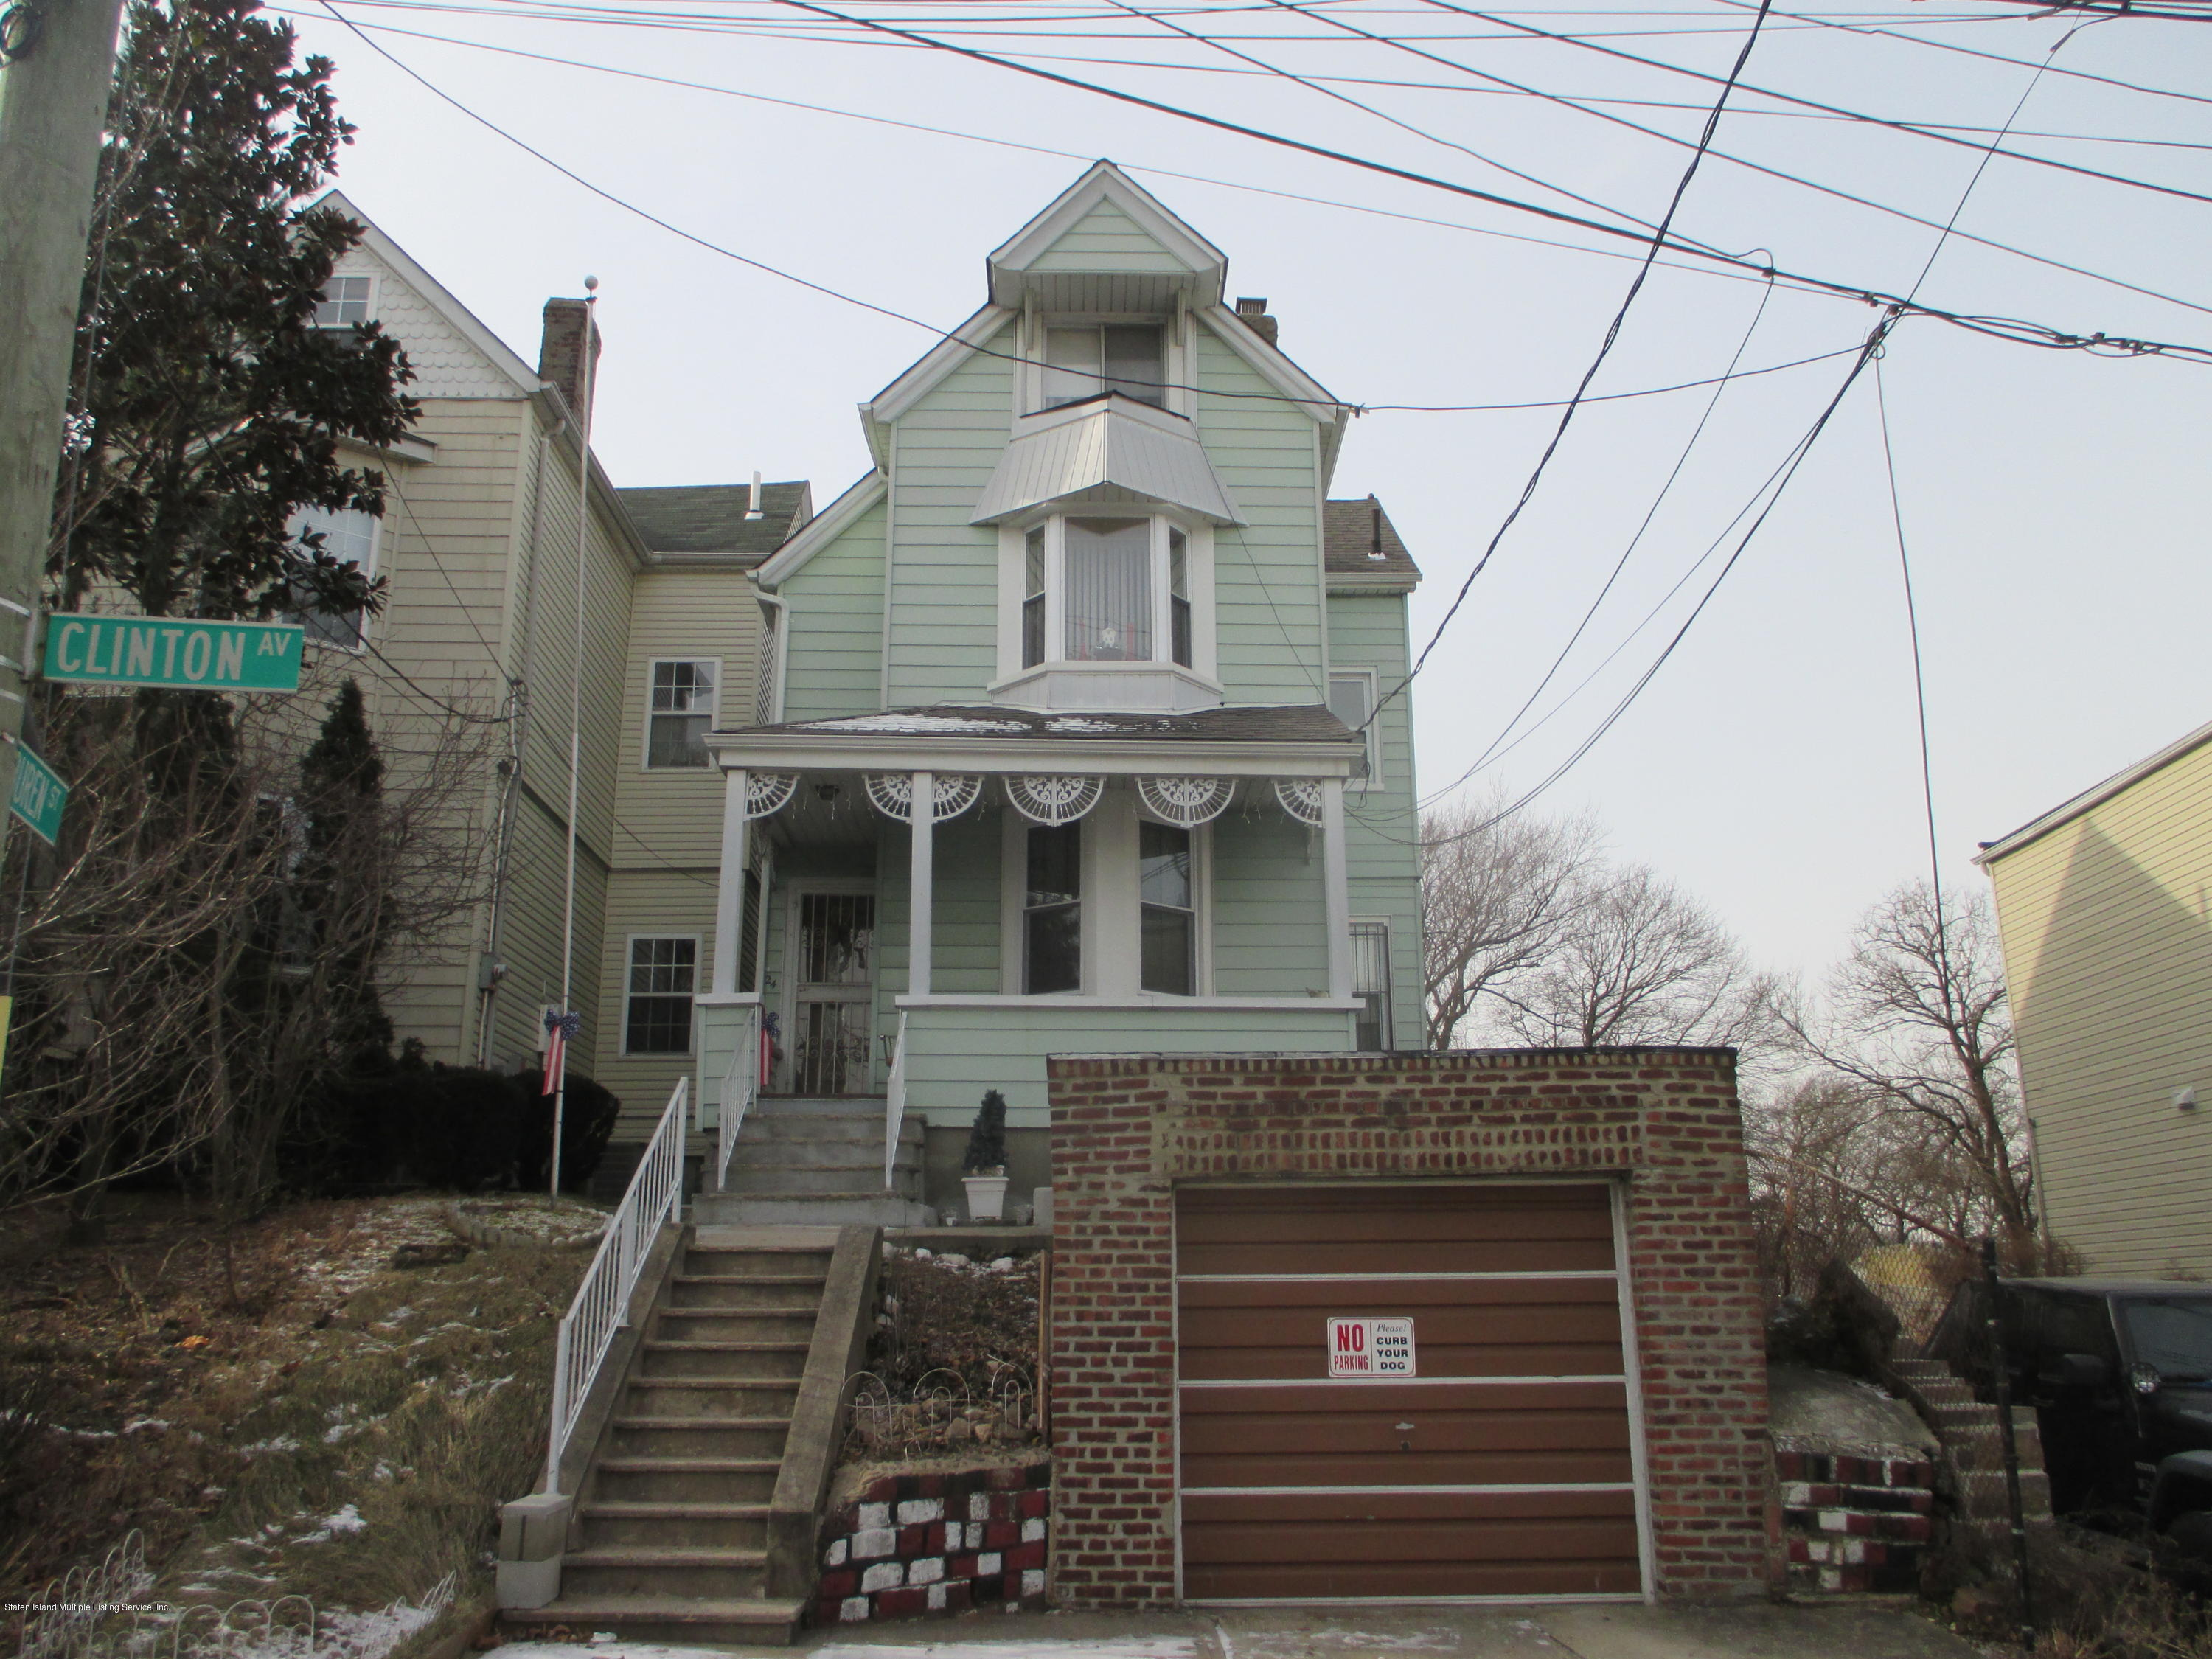 Two Family - Detached 24 Clinton Avenue  Staten Island, NY 10301, MLS-1125949-2